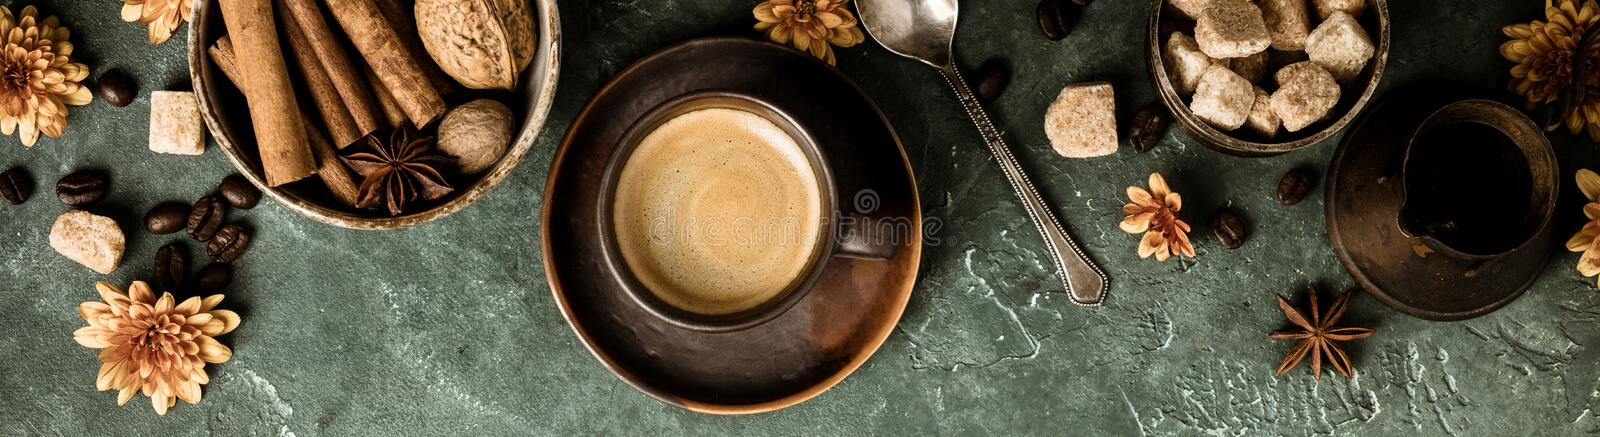 Coffee, flowers and spices on old green background royalty free stock photo